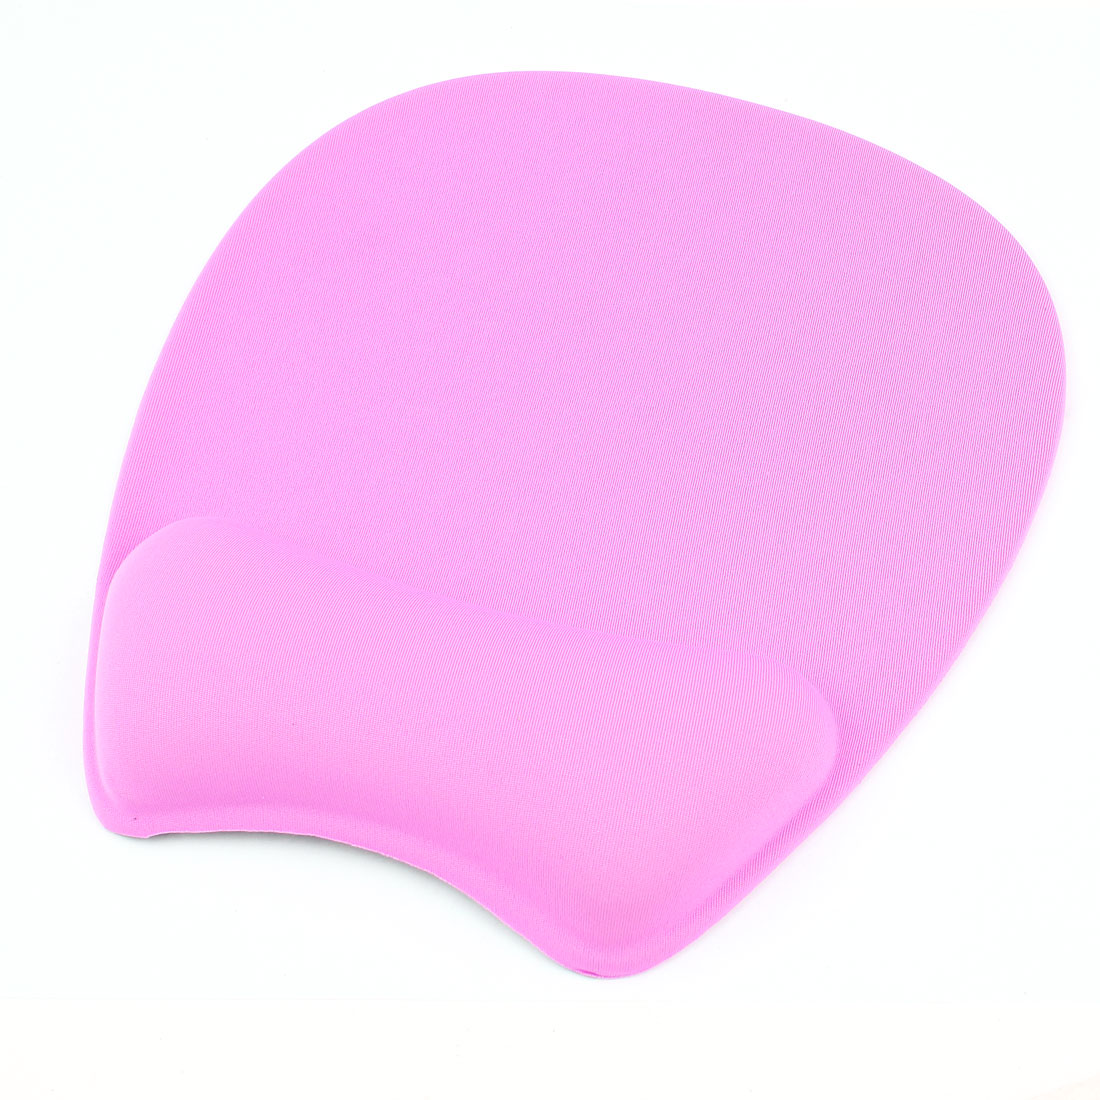 Pink Silicone Gel Wrist Rest Nonslip Mouse Pad Mat for Laptop Desktop